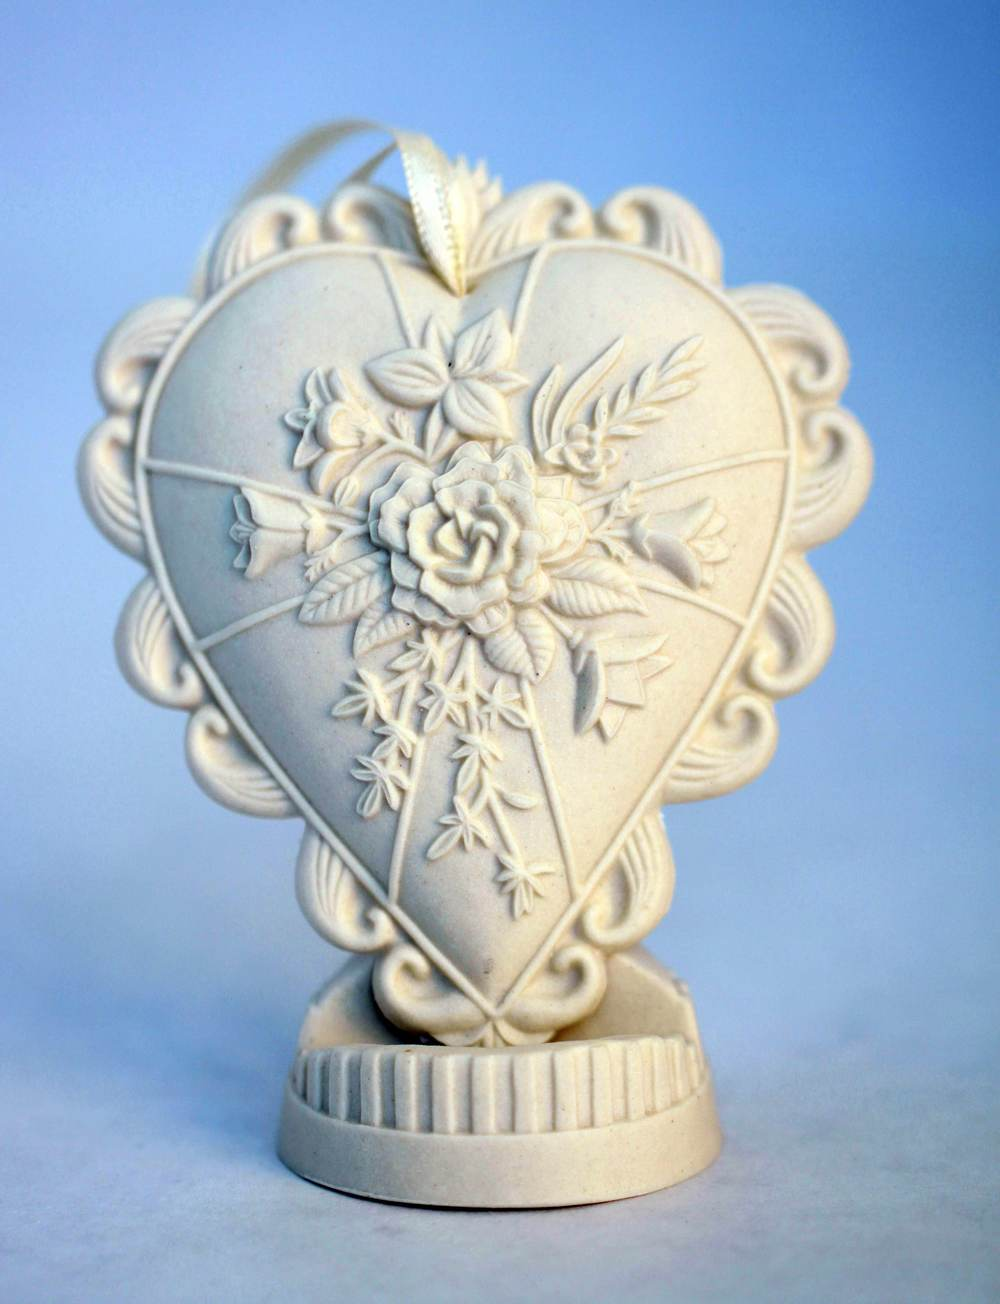 thinking-of-you-porcelain-heart-ornament